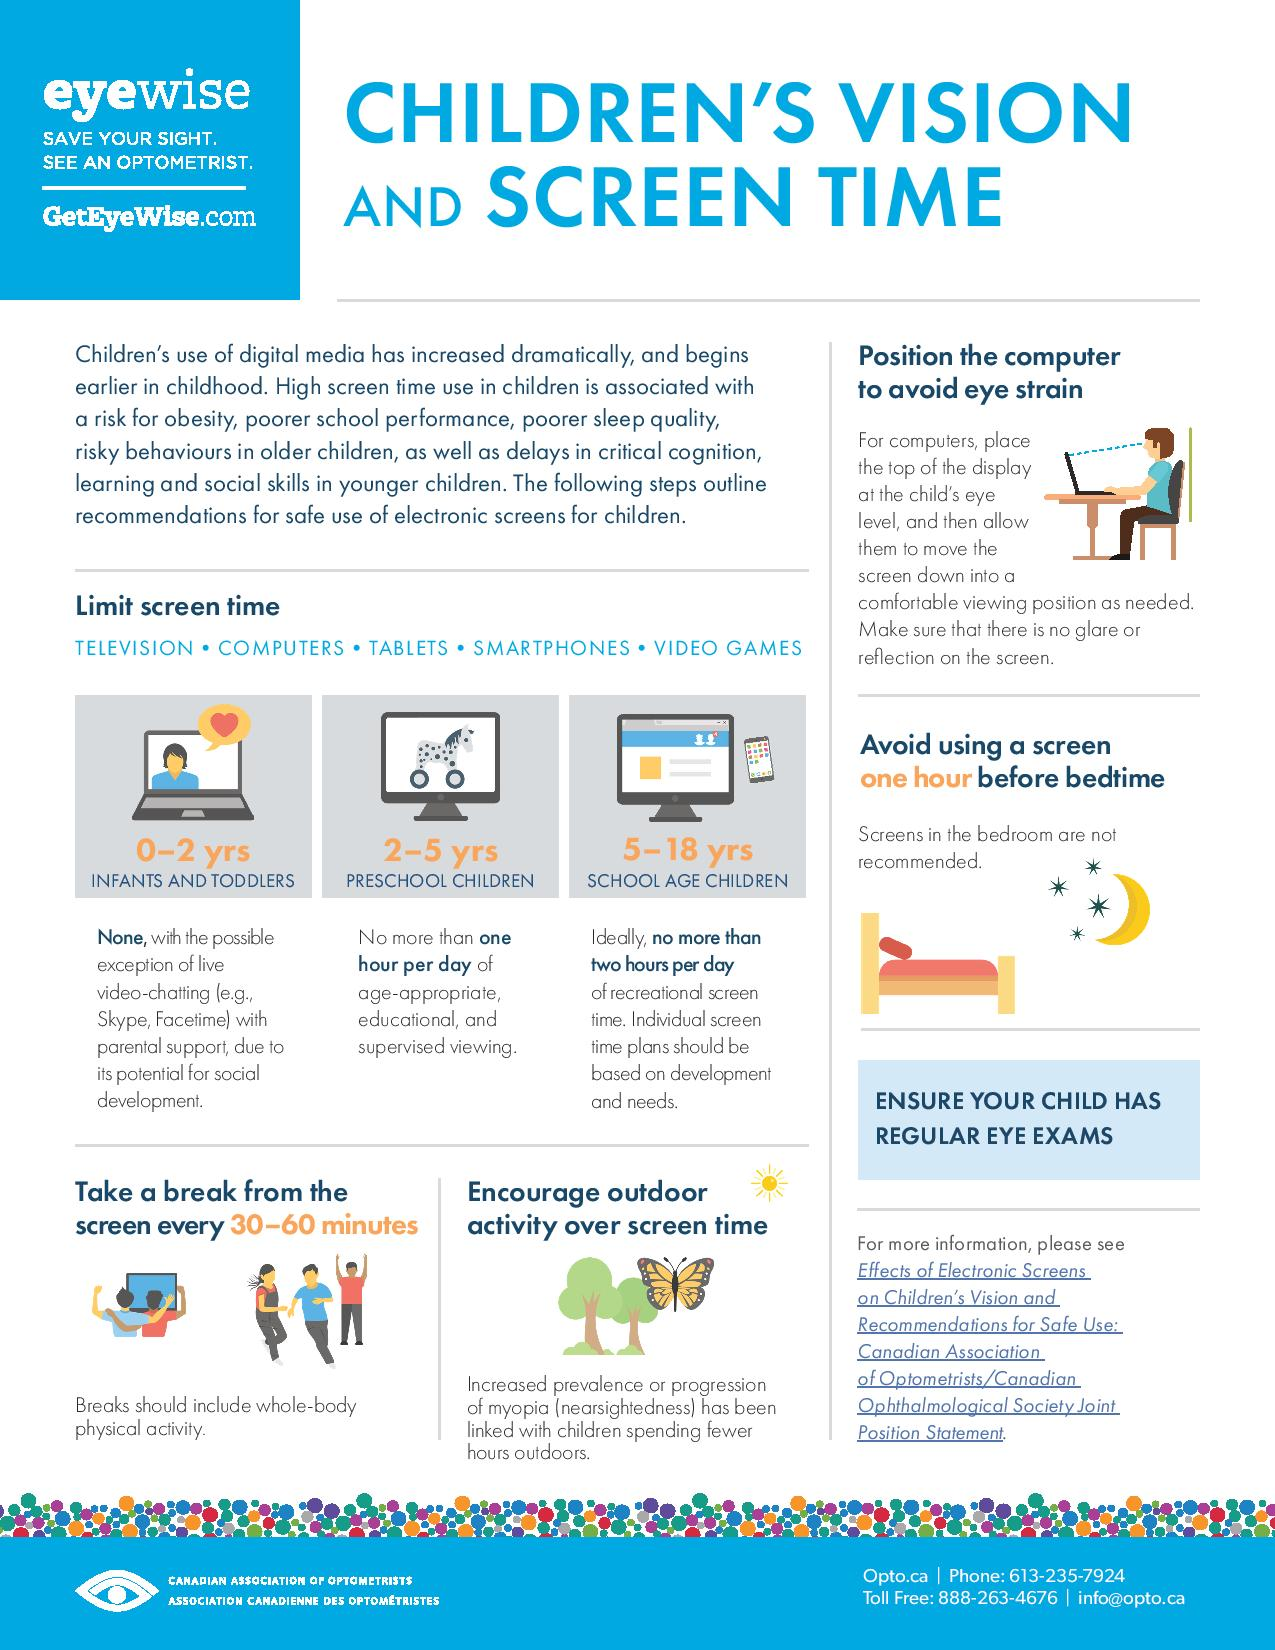 childrens vision and screen time - Mississaugua & Milton, ON